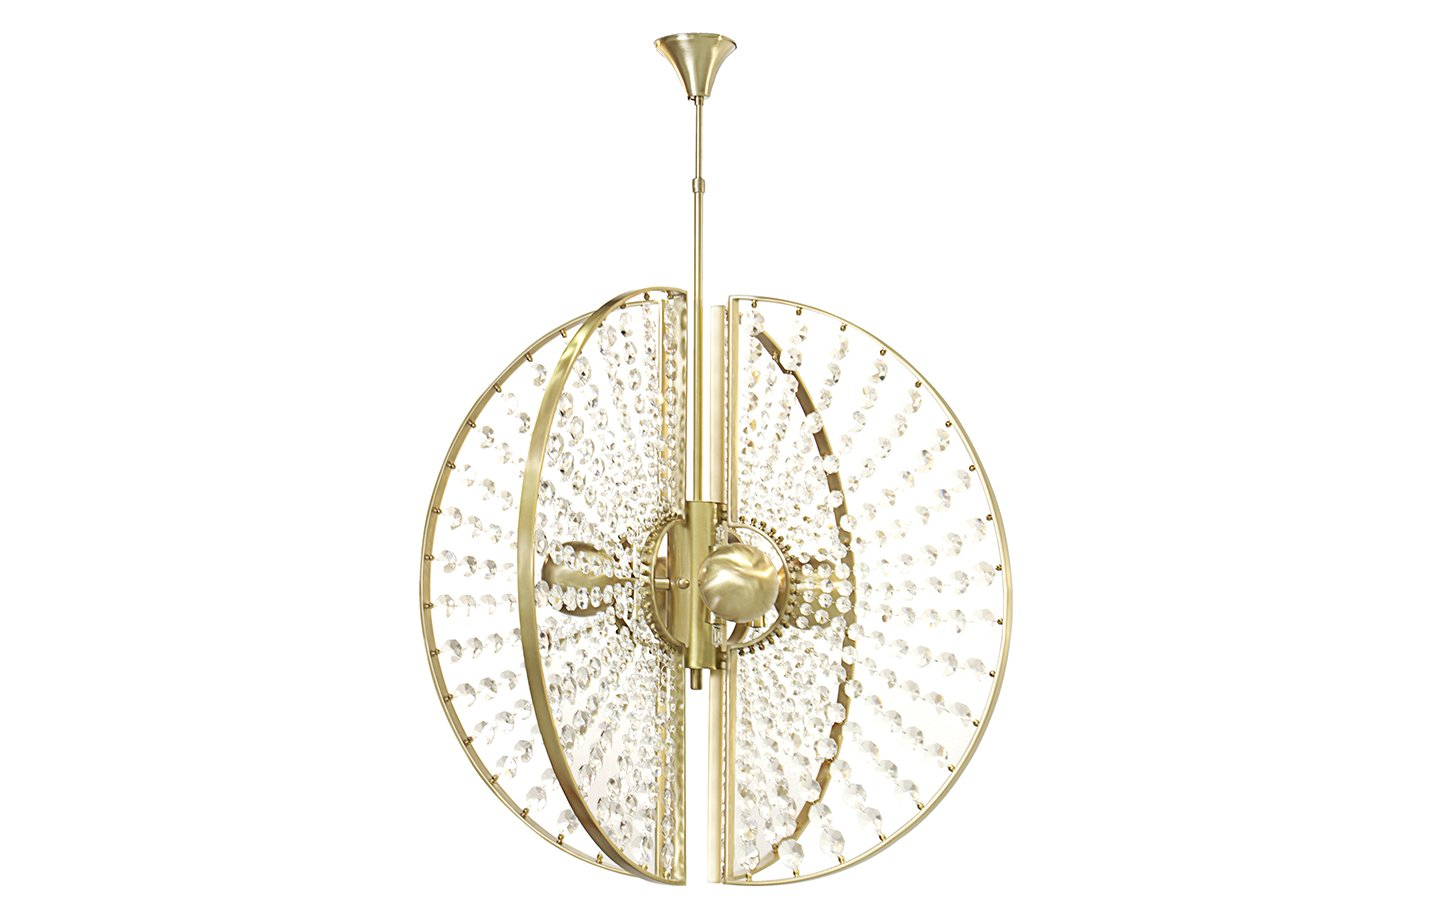 Roxy chandelier light – Brass